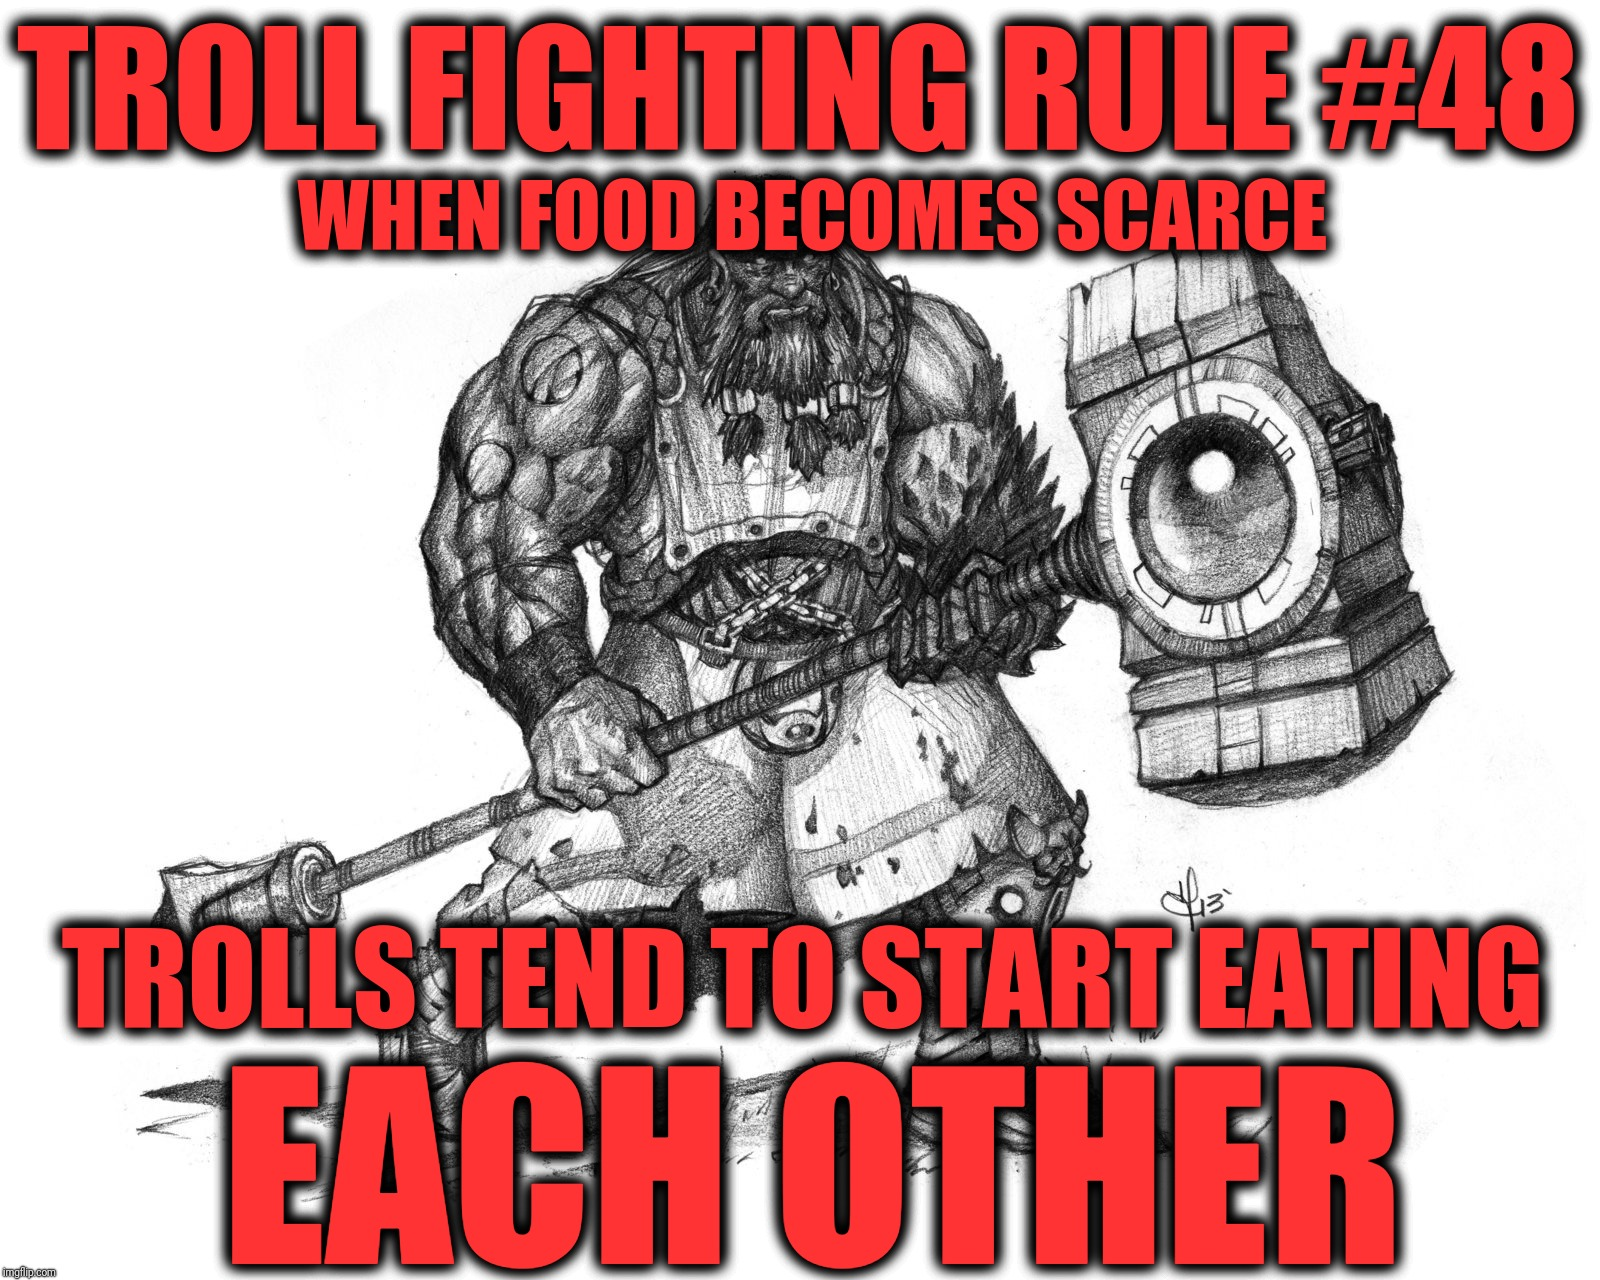 Troll Fighting Rule #48 |  TROLL FIGHTING RULE #48; WHEN FOOD BECOMES SCARCE; TROLLS TEND TO START EATING; EACH OTHER | image tagged in troll smasher,don't feed the trolls | made w/ Imgflip meme maker